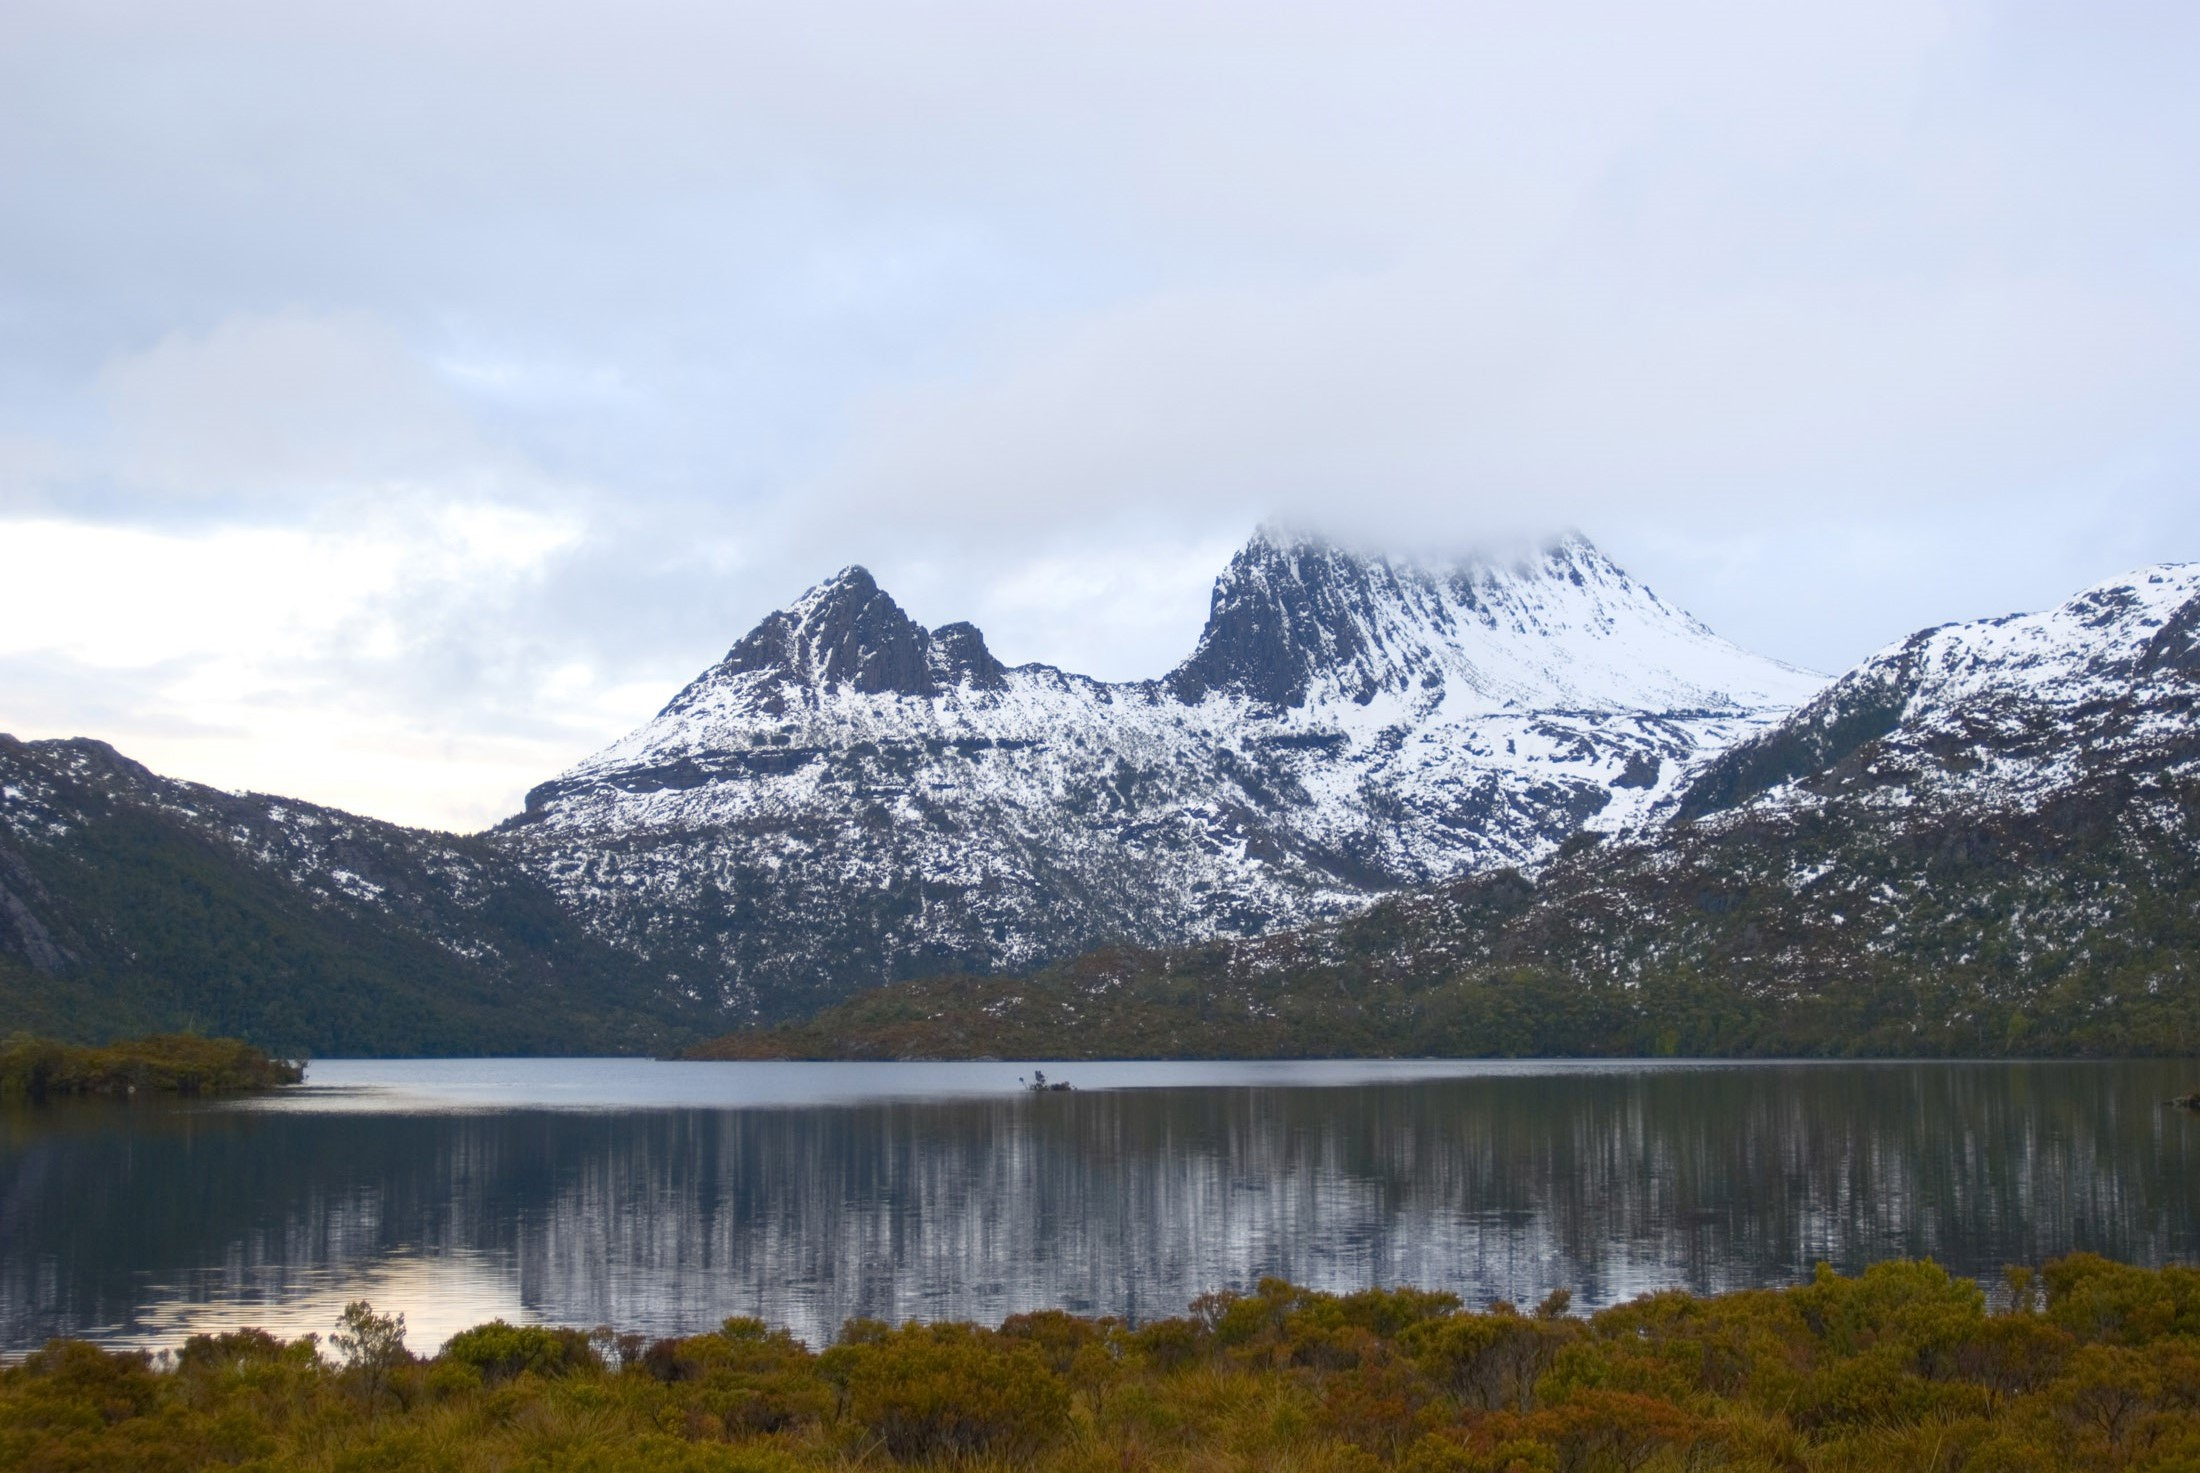 Cradle mountain with a covering of snow, Cradle Mountain-Lake St Clair National Park